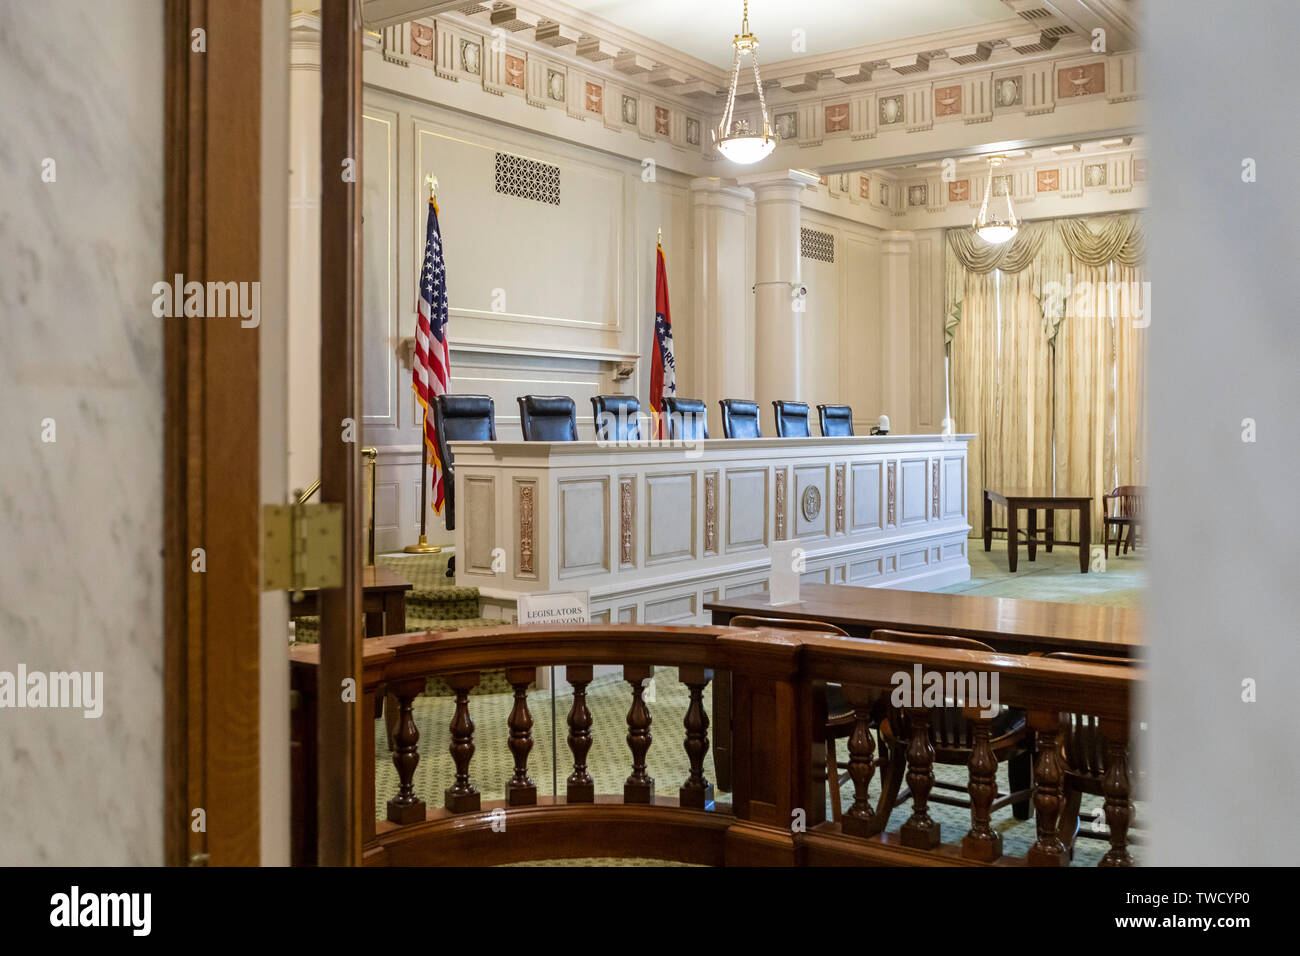 Little Rock, Arkansas - The old Supreme Court chamber in the Arkansas state capitol building. - Stock Image